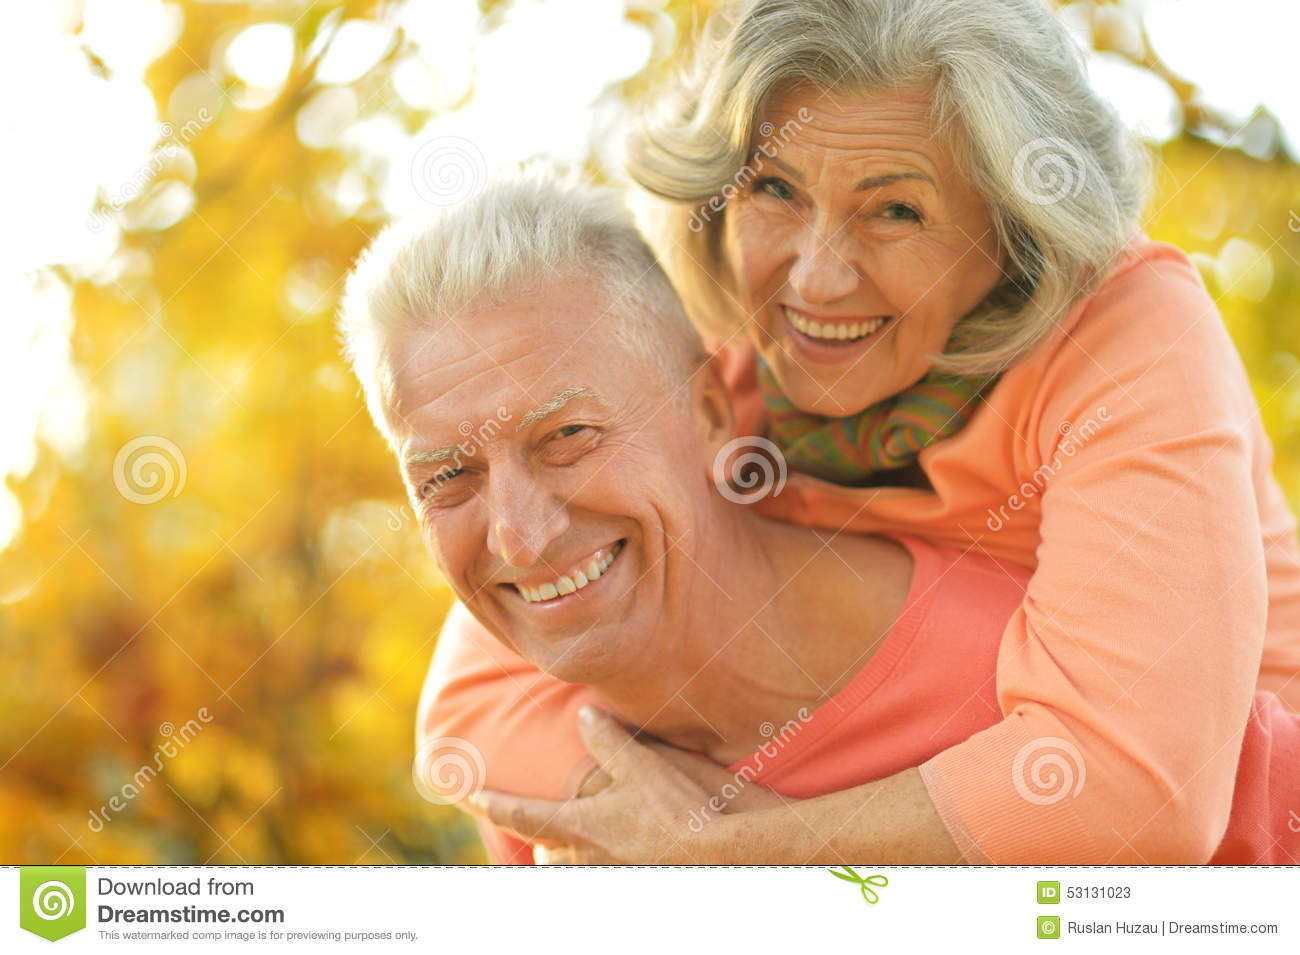 happy-old-people-beautiful-autumn-park-53131023.jpg